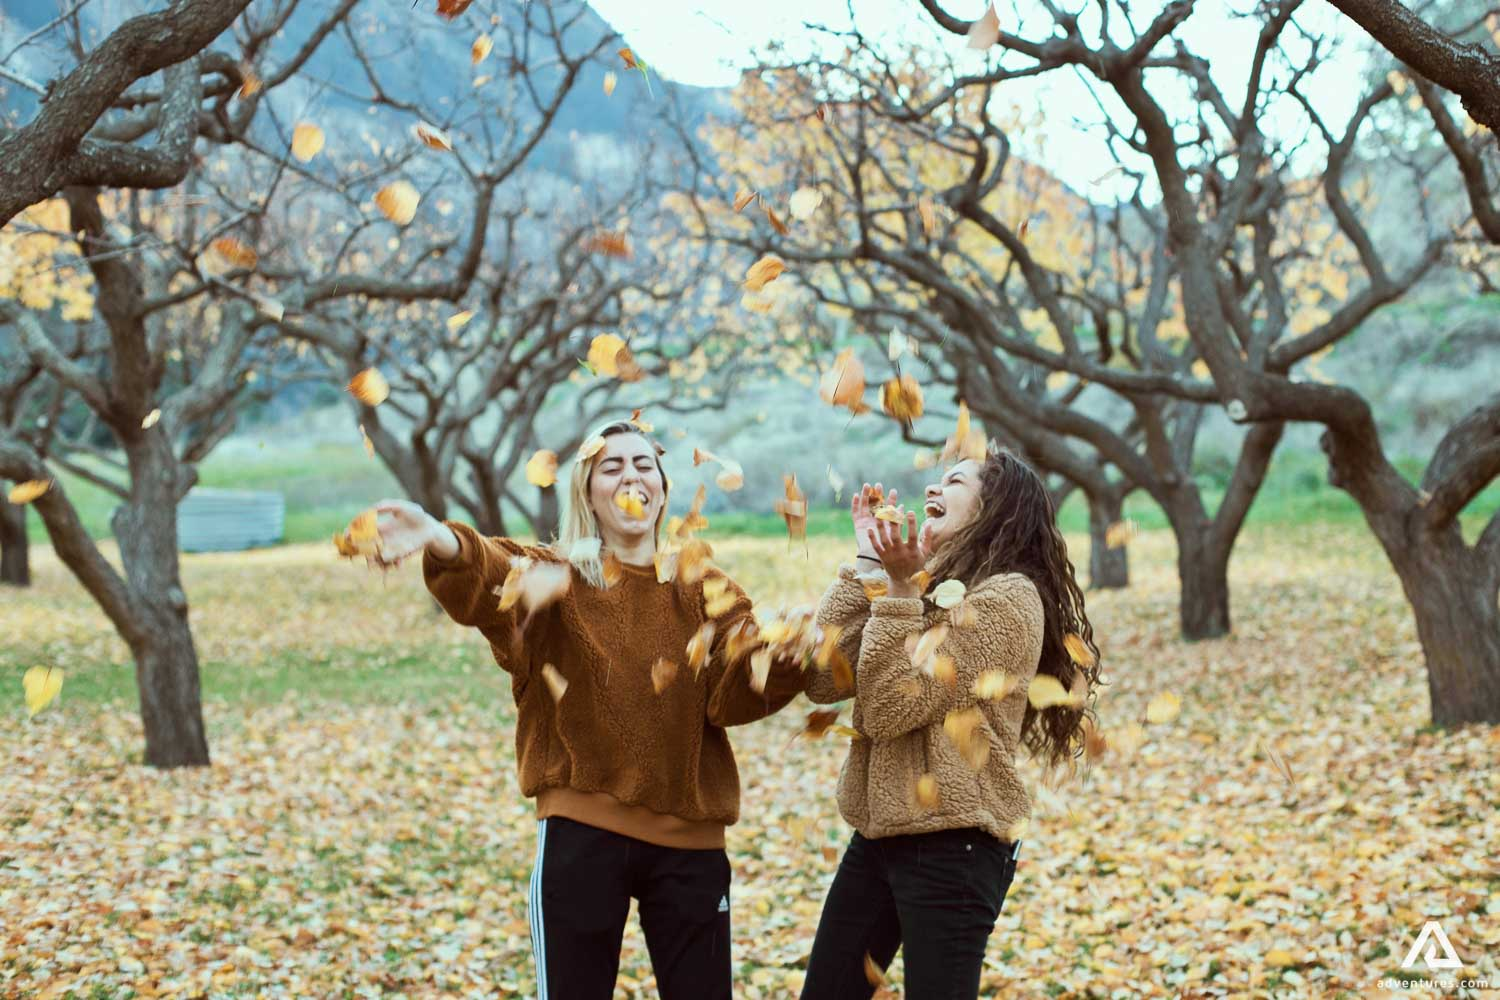 Autumn leaves falling on happy girls